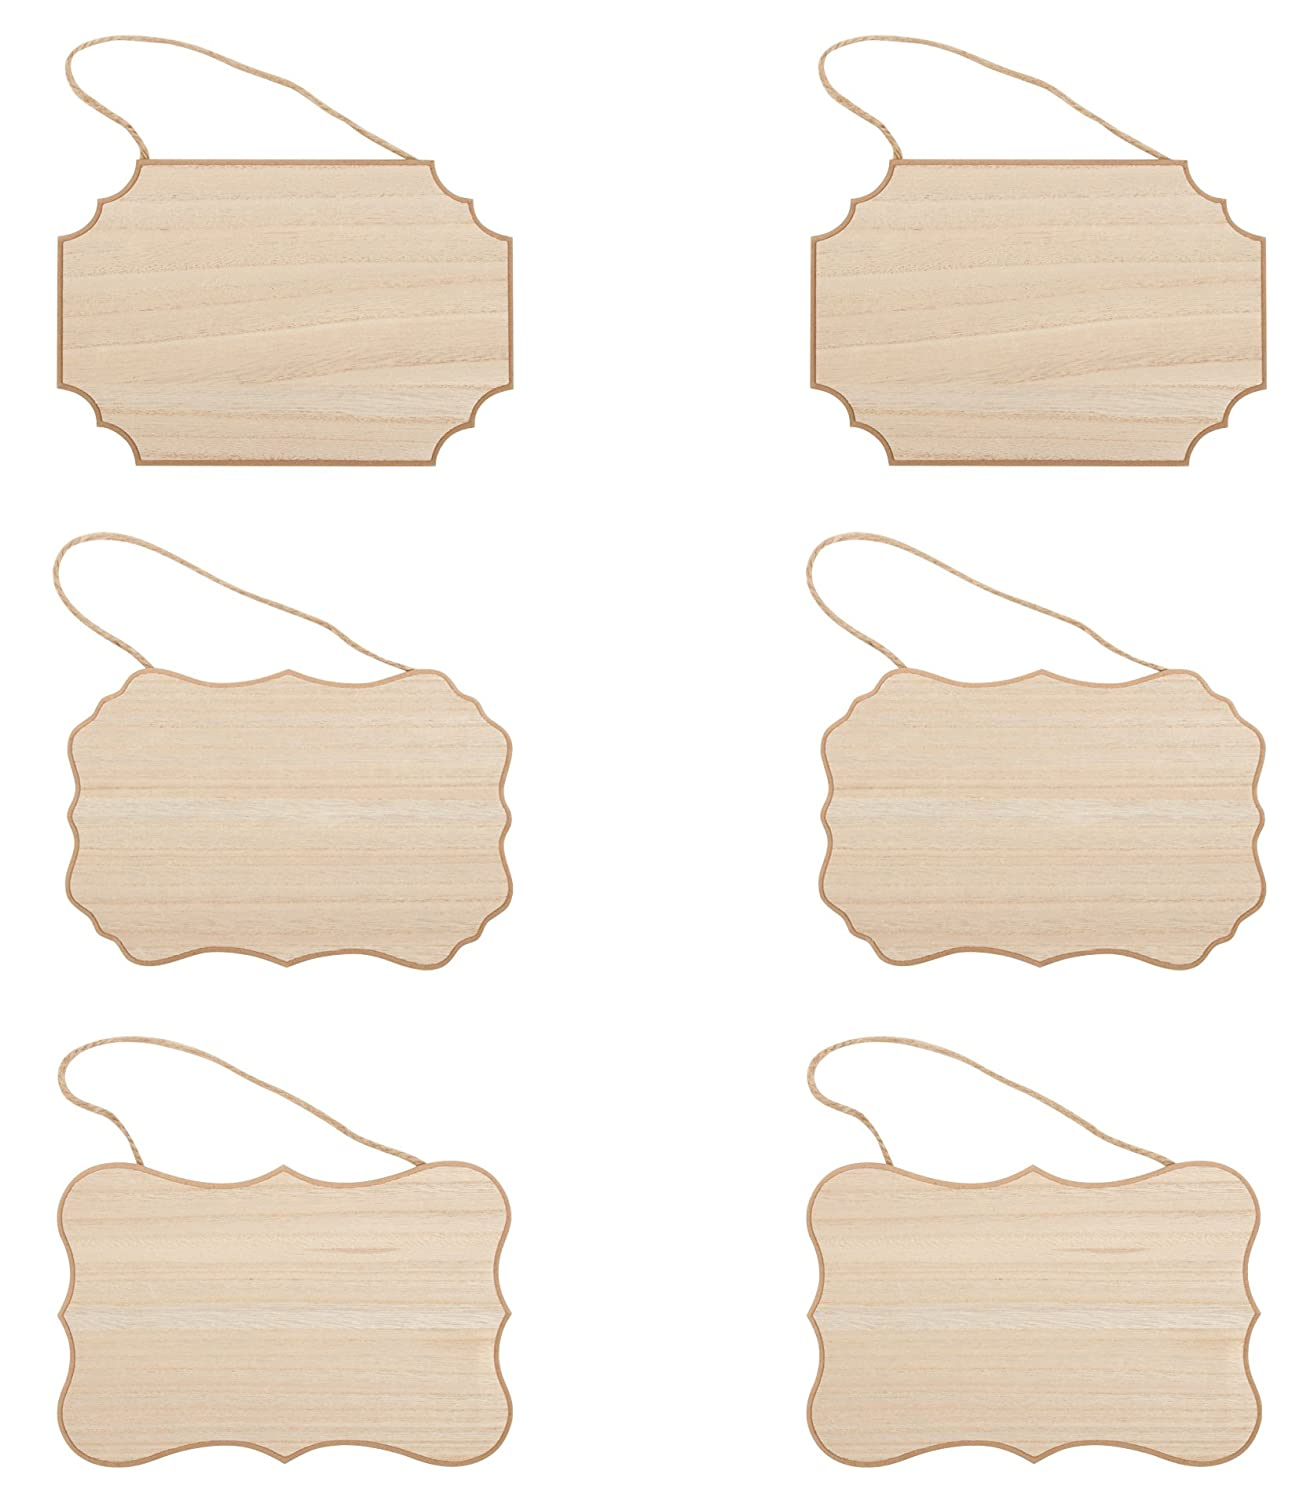 Unfinished Wood Plaque - 6-Pack Hanging MDF Wooden Plaque with Jute Rope, Rectangle Rustic Signs for Home Decor, Award Recognition, DIY Projects, 2 Each of 3 Designs, 9 x 6 x 0.25 Inches